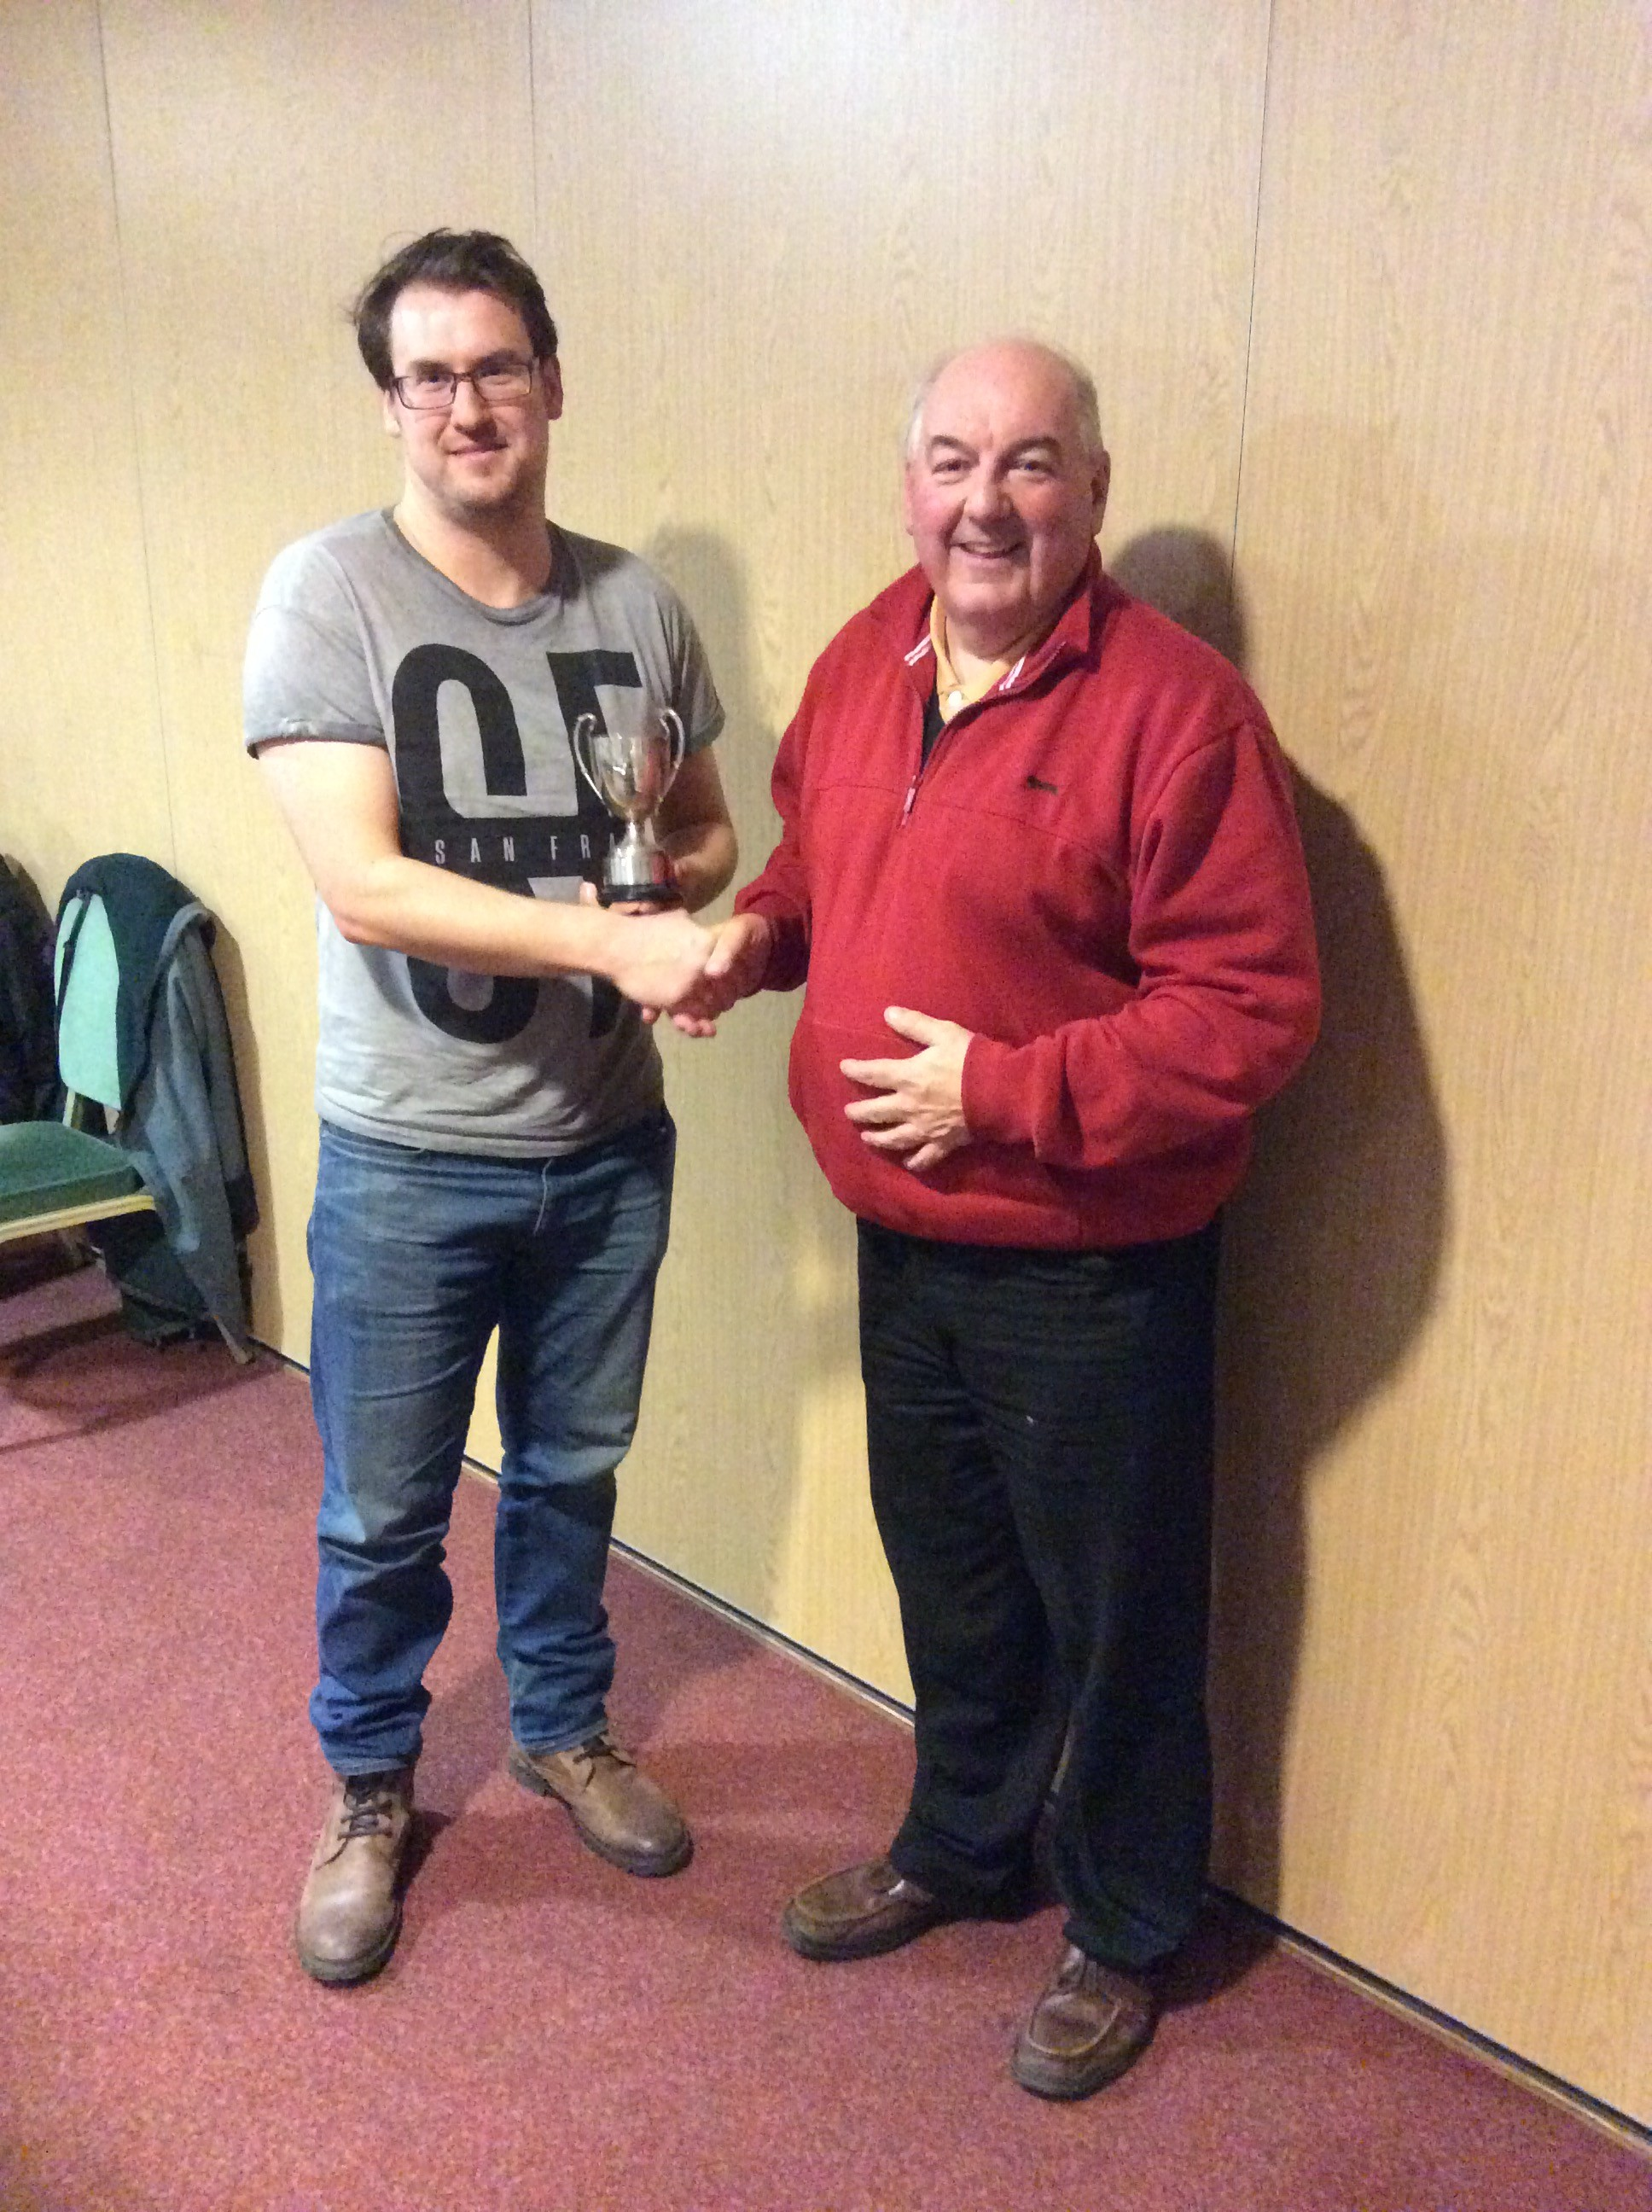 Umpires Cup 2015 - Performance of the Year - Chris Prophet - received his award from the Club Chairman for a fine (and nearly match winning) 98 v. Bablake Old Boys in a Warwickshire Cricket League Premier Division match.